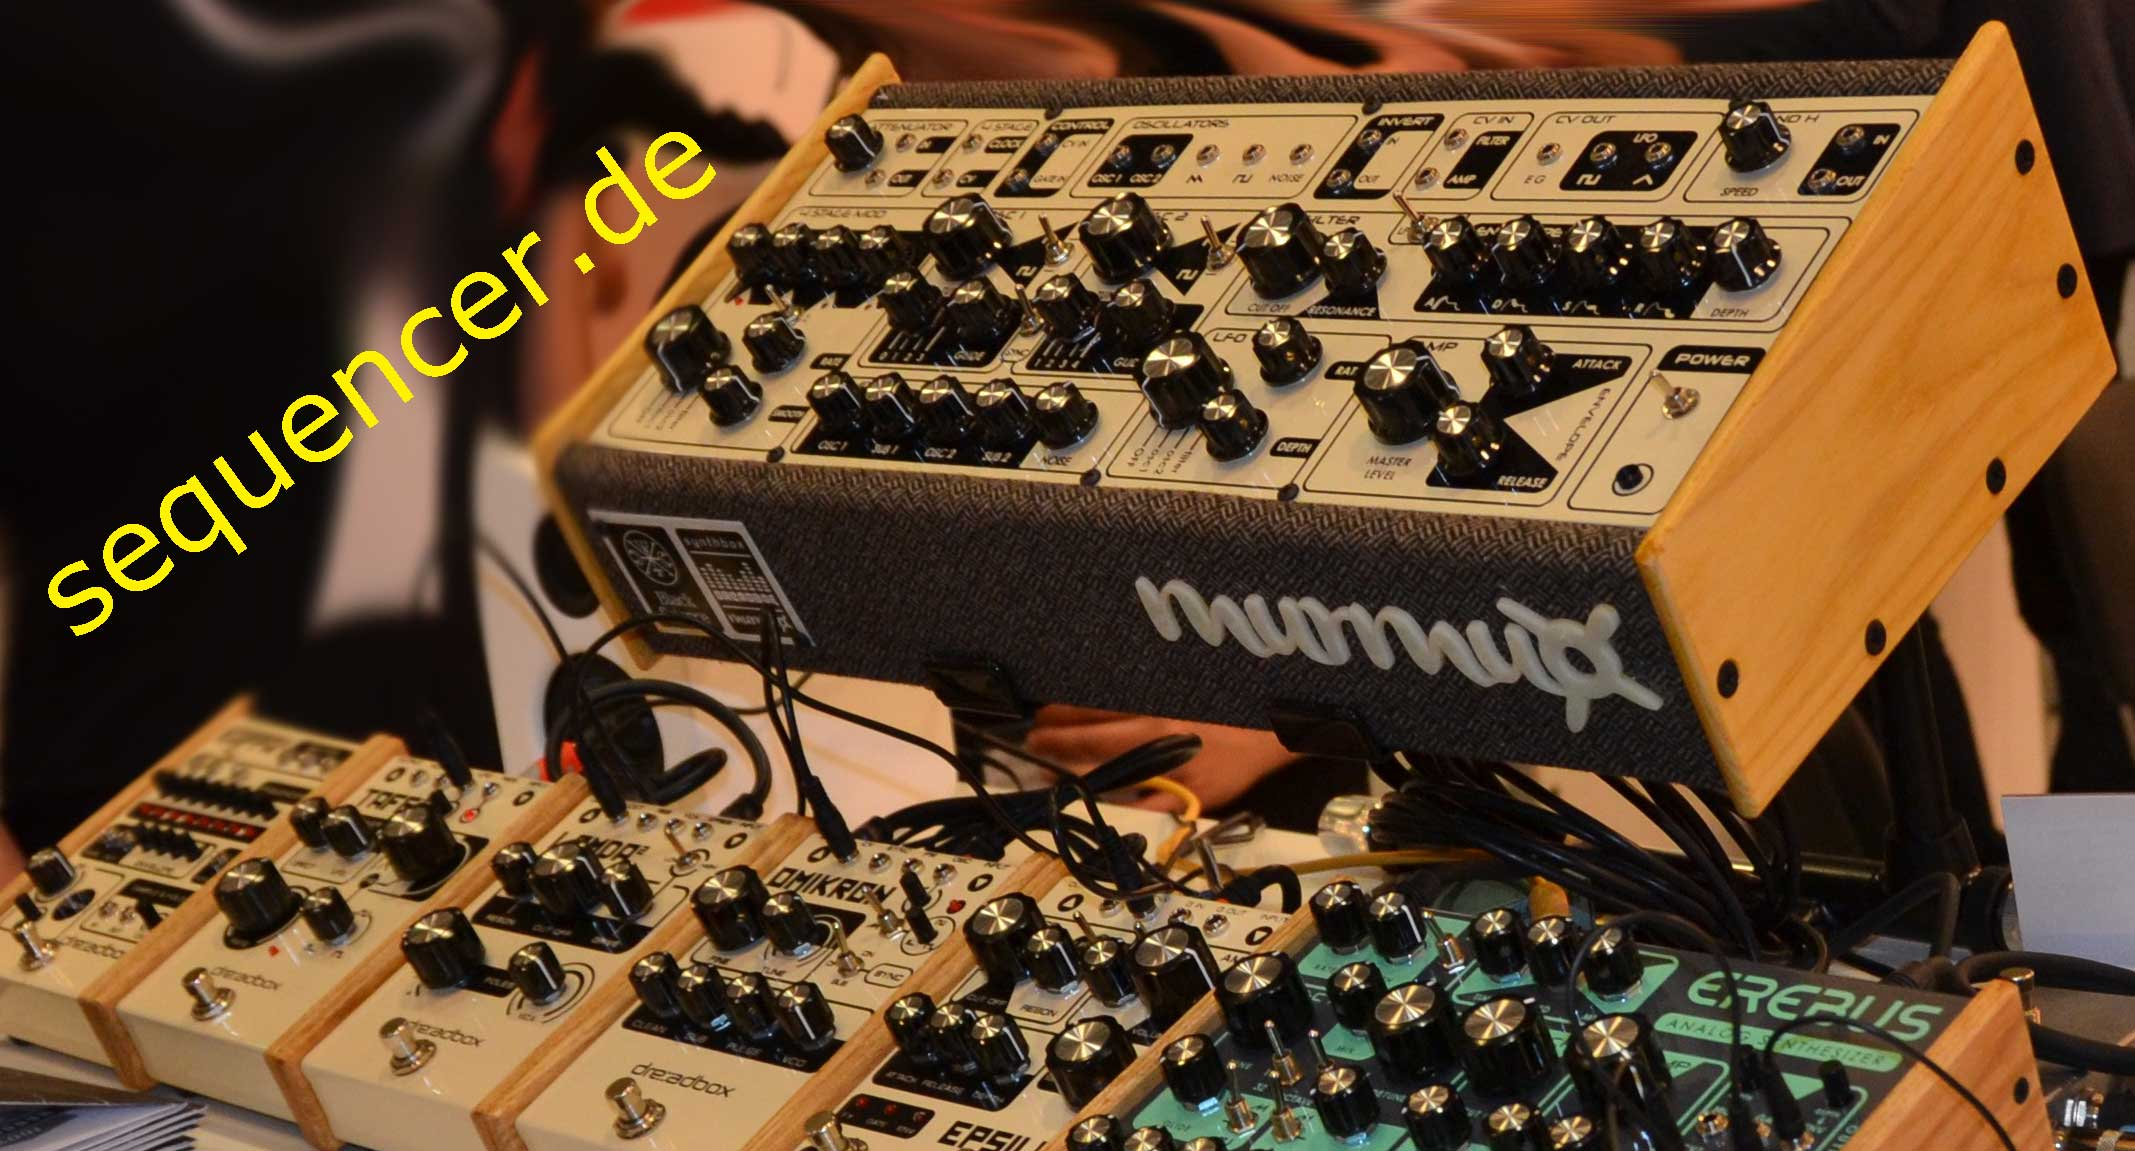 Dreadbox Murmux Semimodular synthesizer